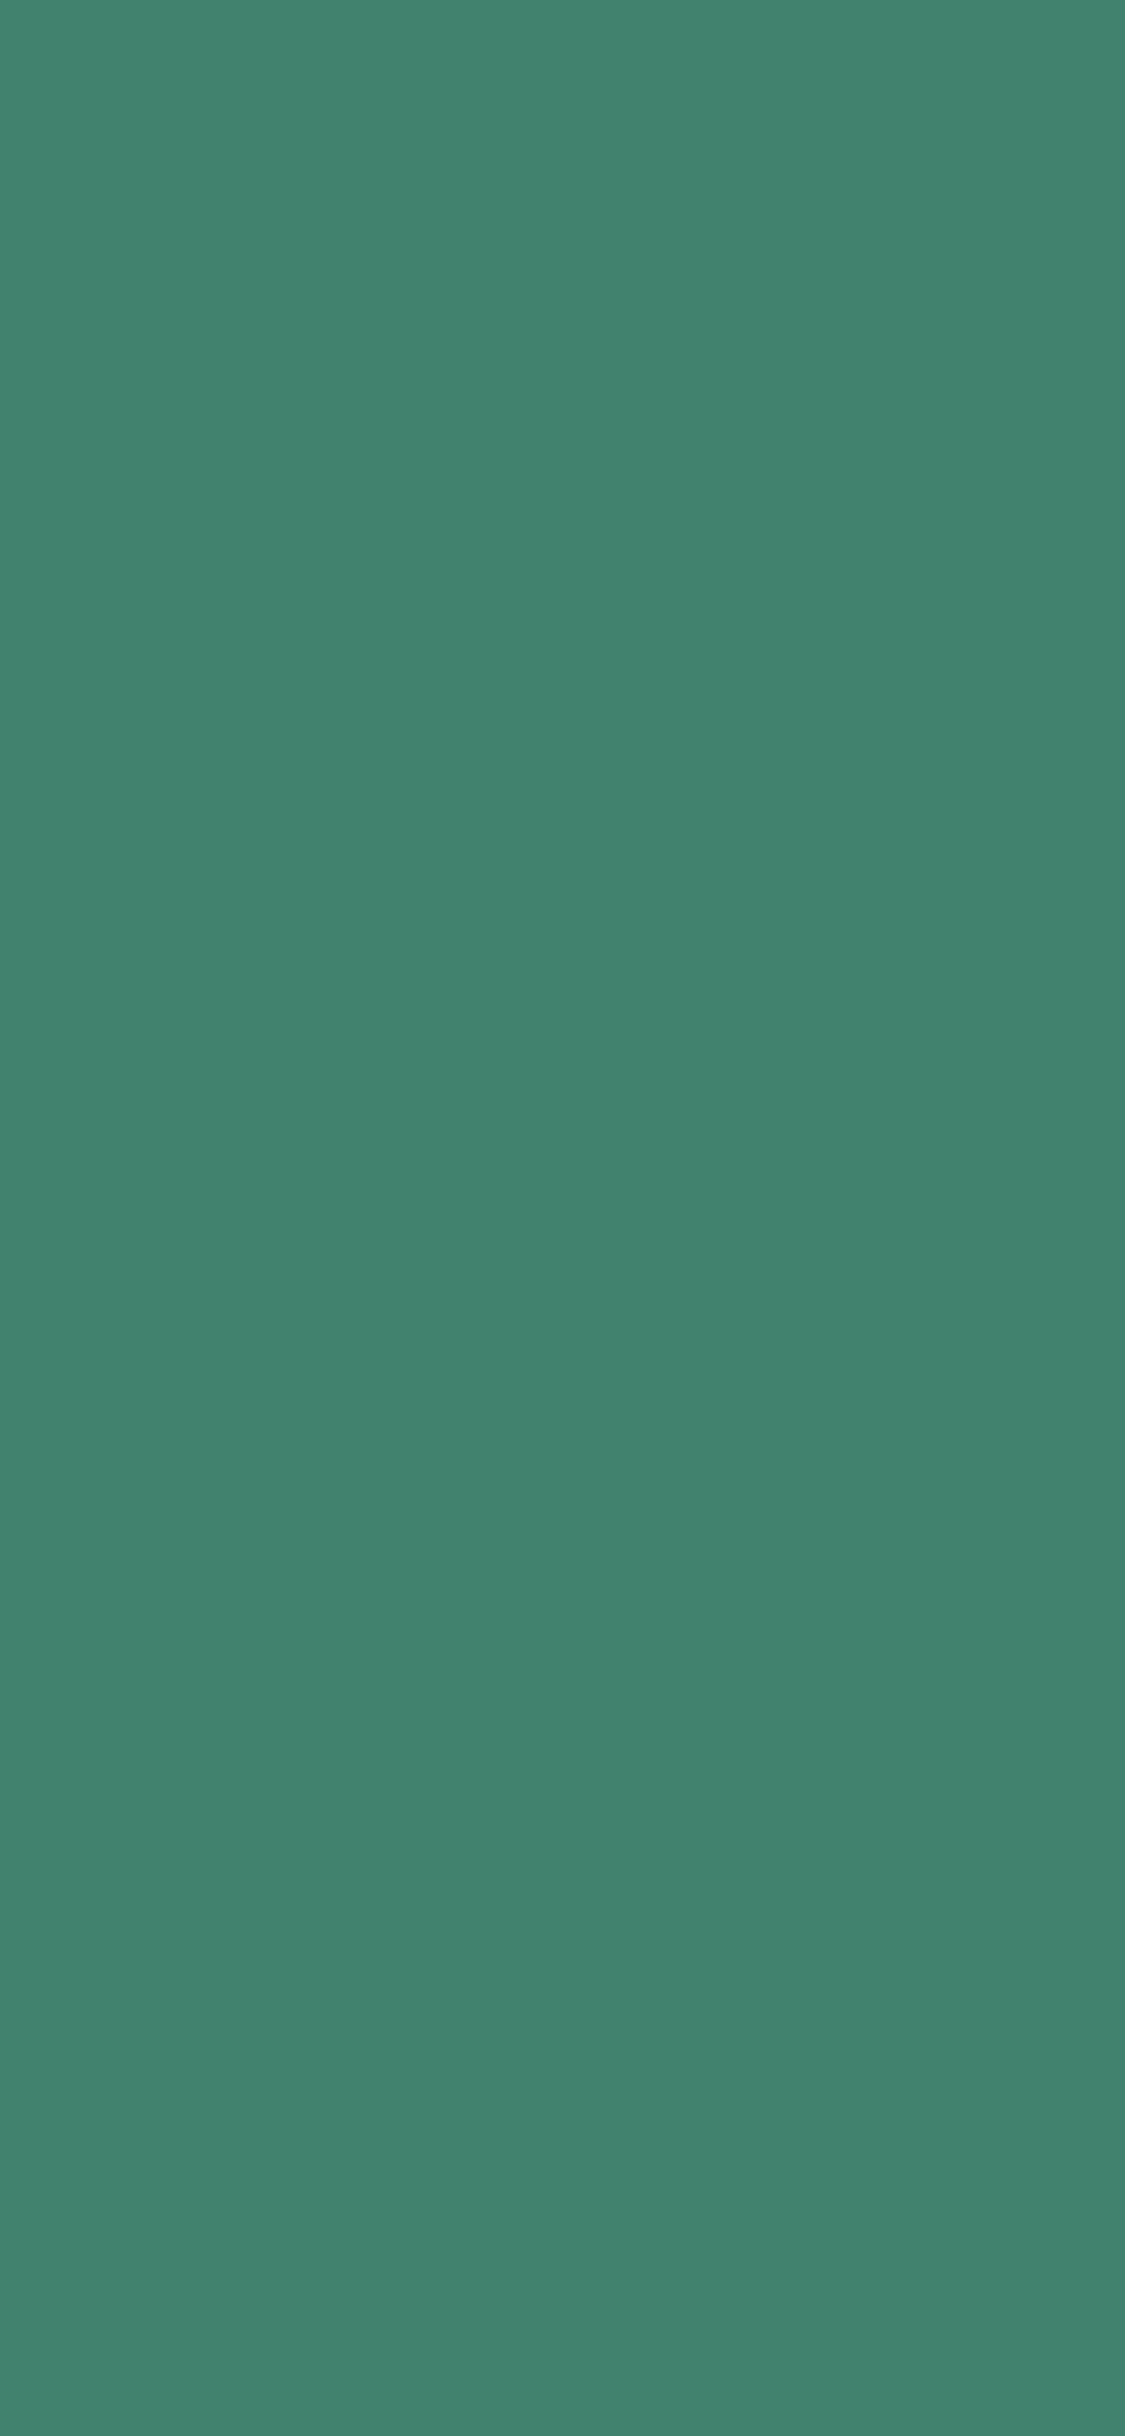 1125x2436 Viridian Solid Color Background